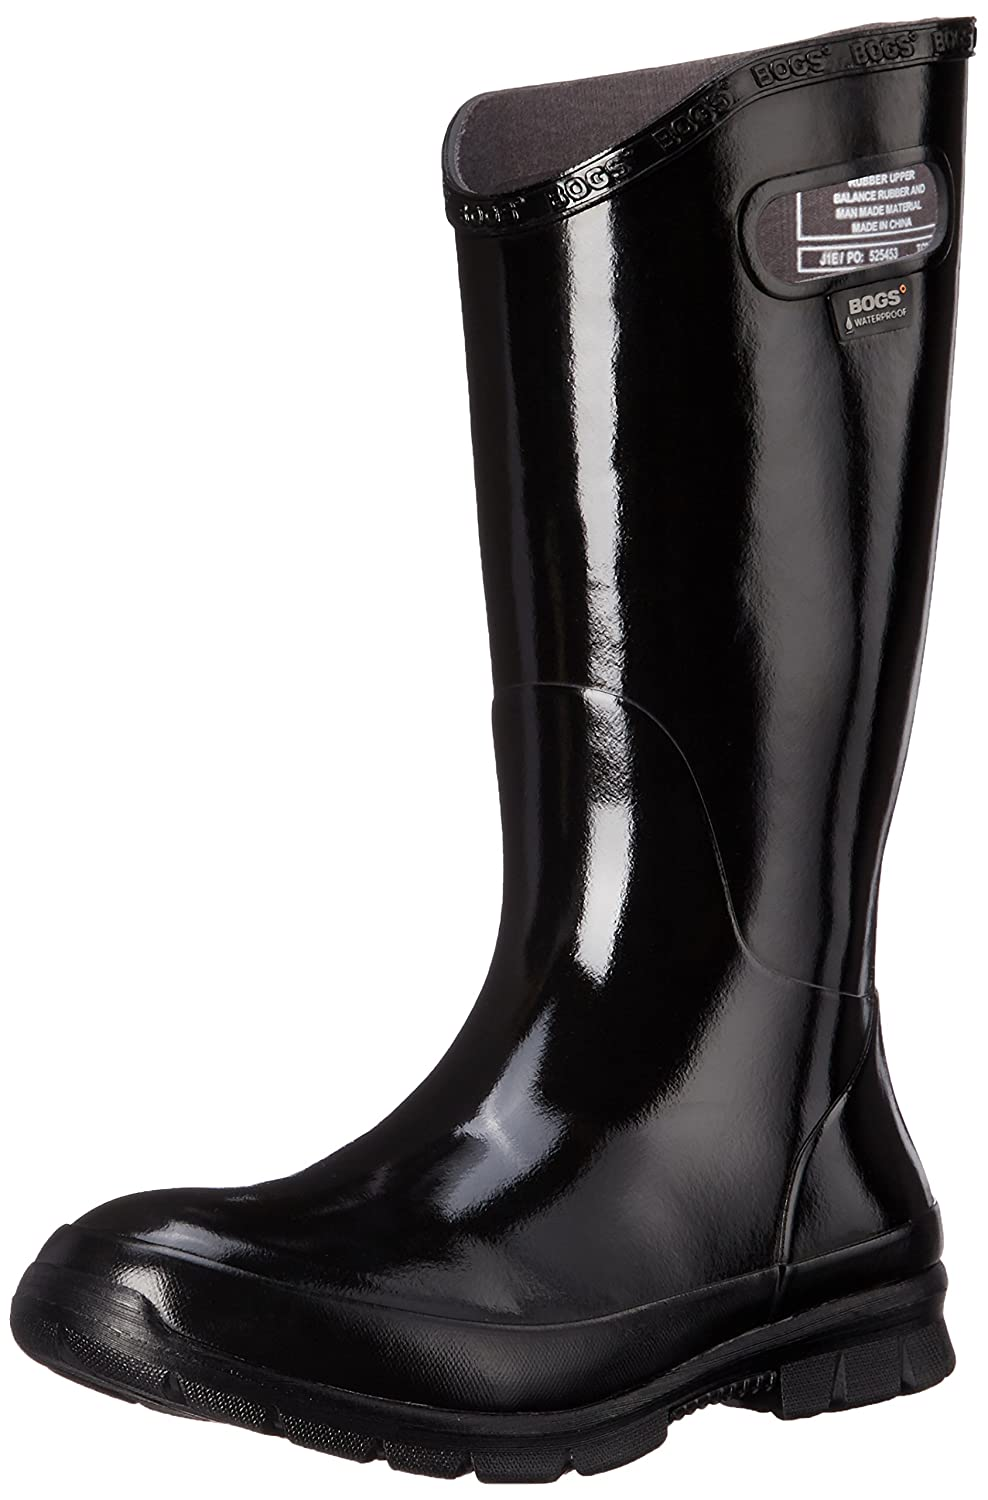 Bogs Women's Berkley Rain Boot B010OZID4K 9 B(M) US|Black